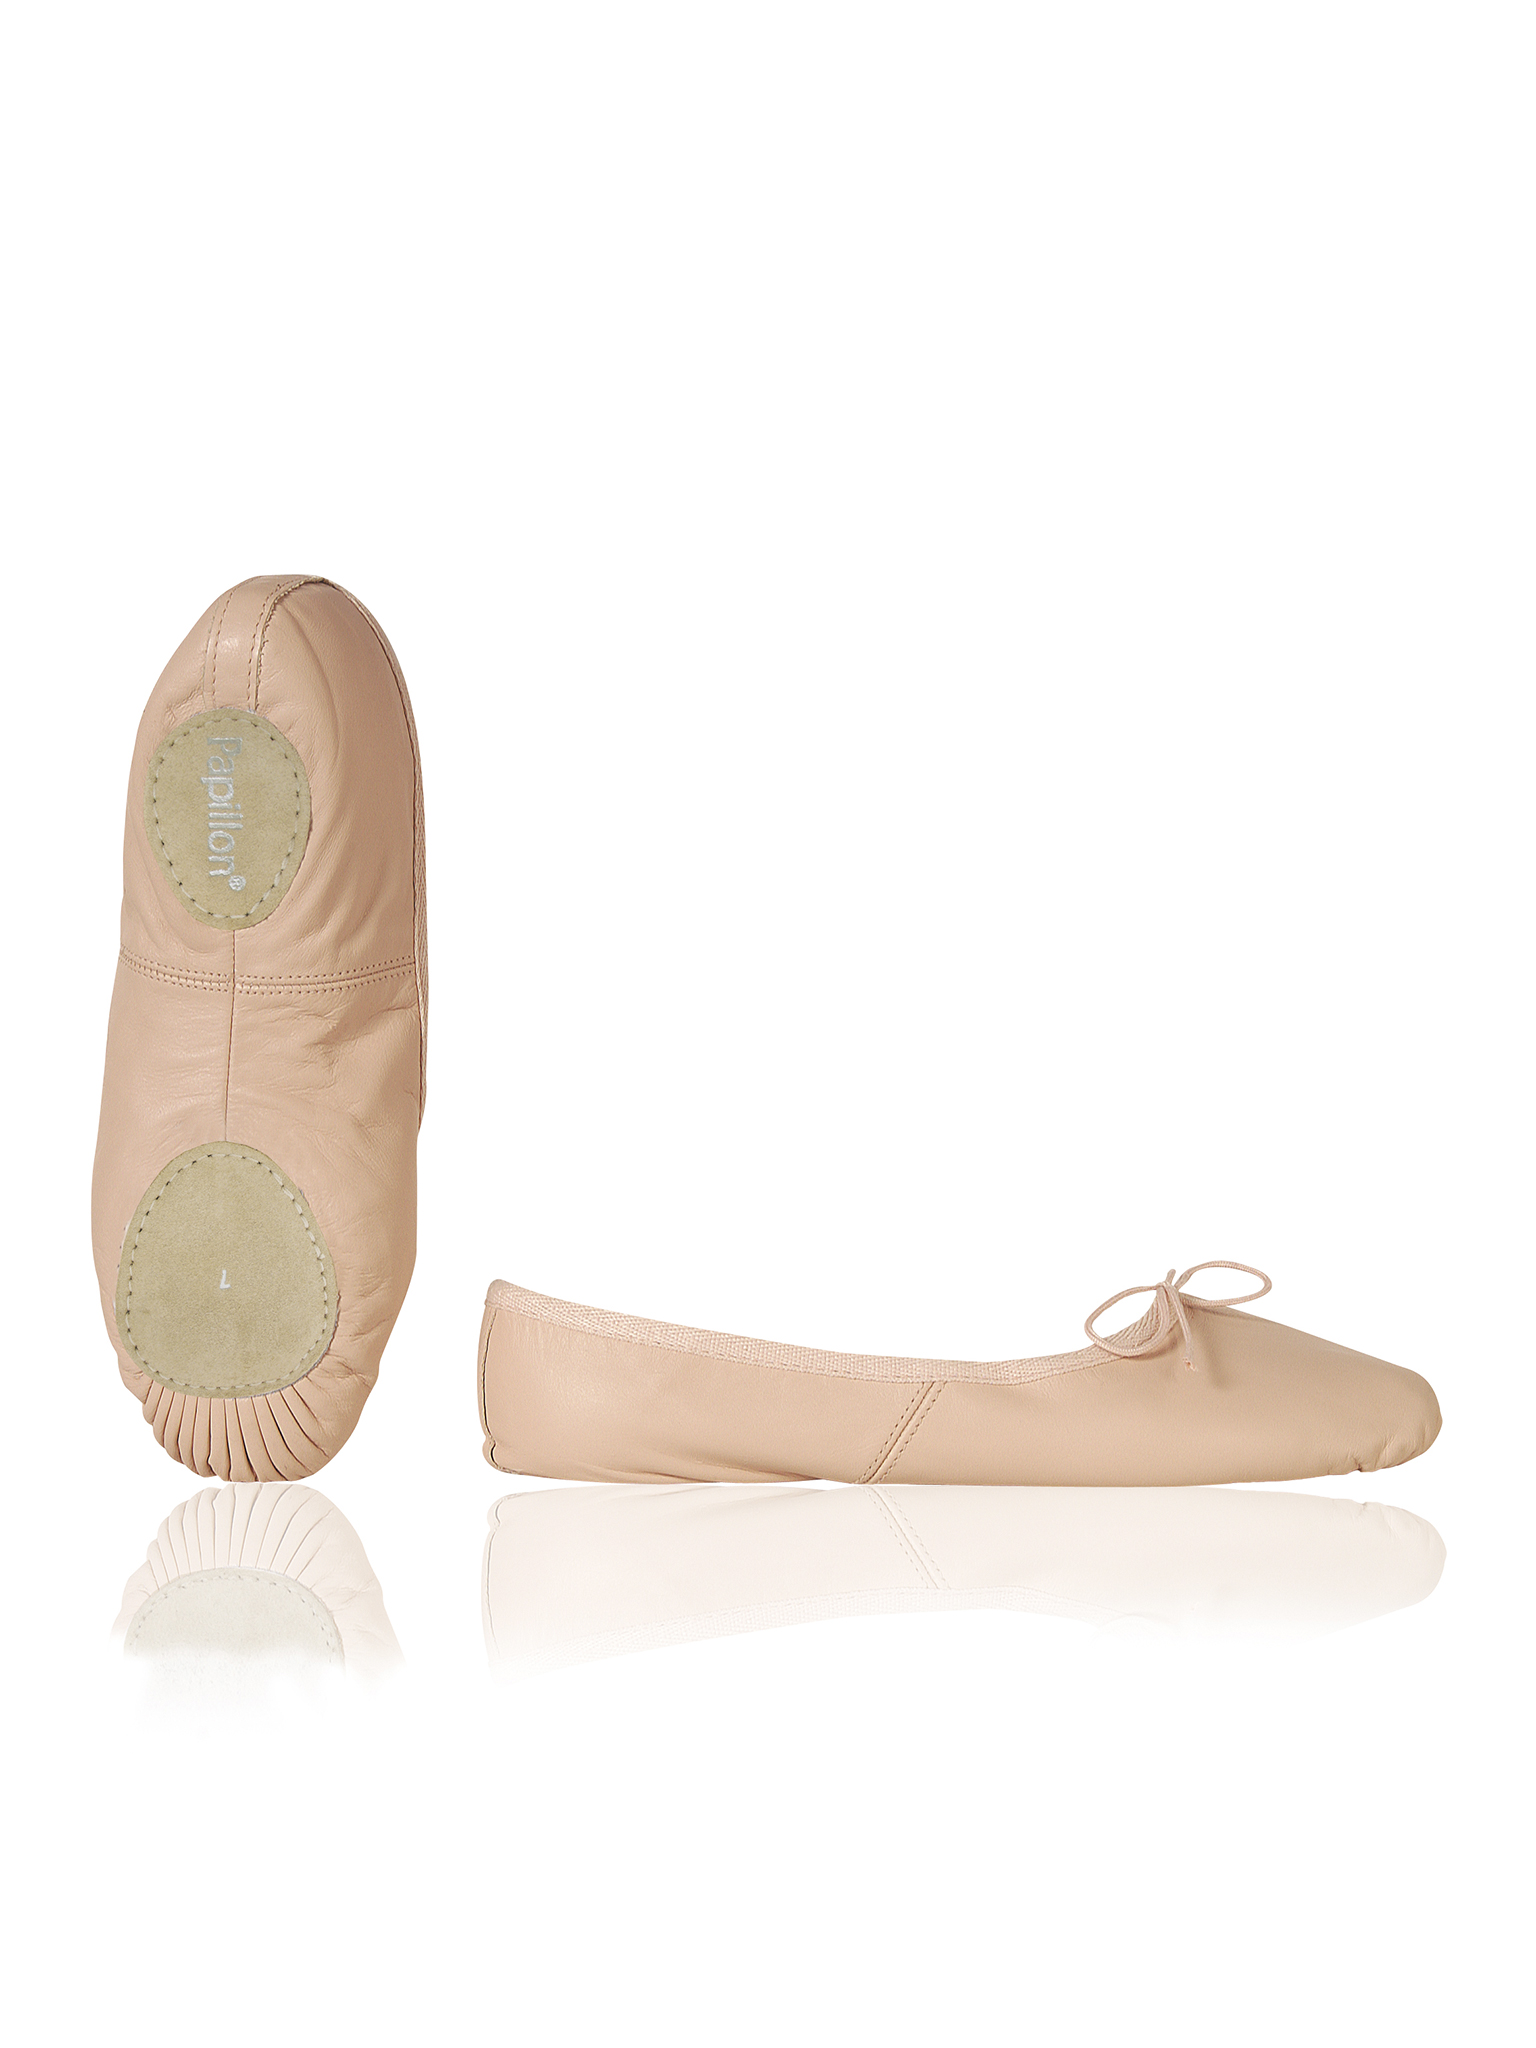 Image of   Papillon Ballet shoe Soft leather split sole Women - Pink - 75